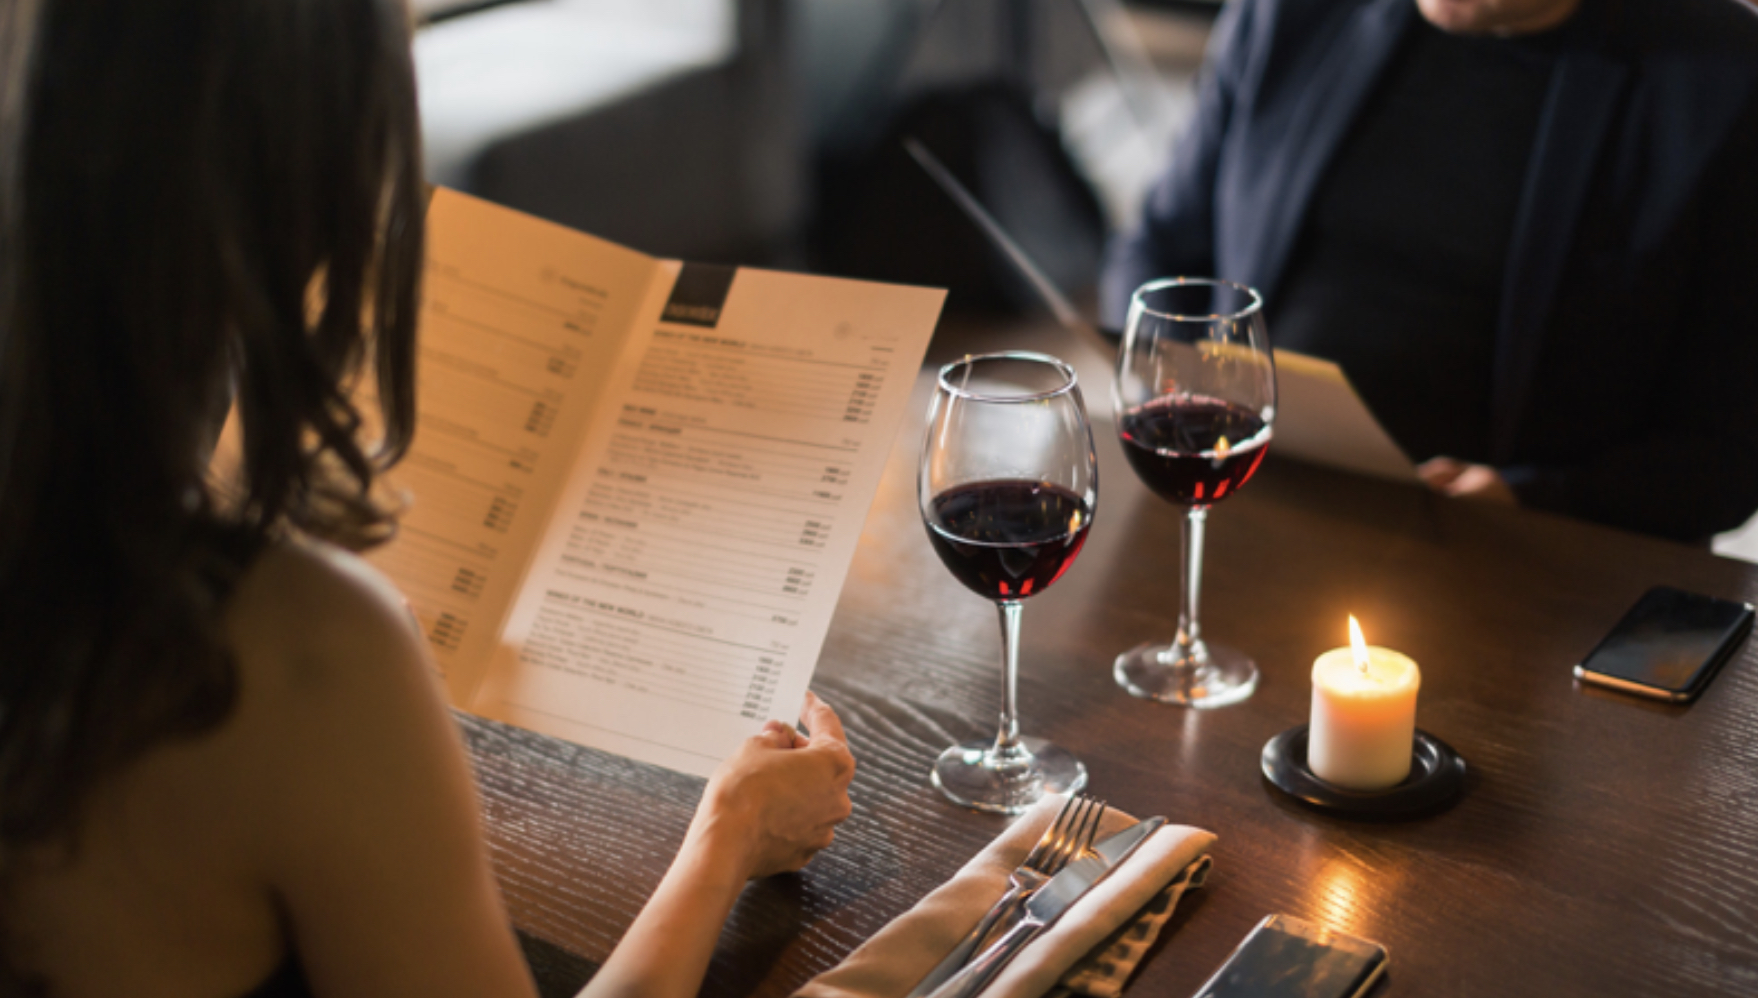 Design Science: How to Create an Effective Restaurant Menu